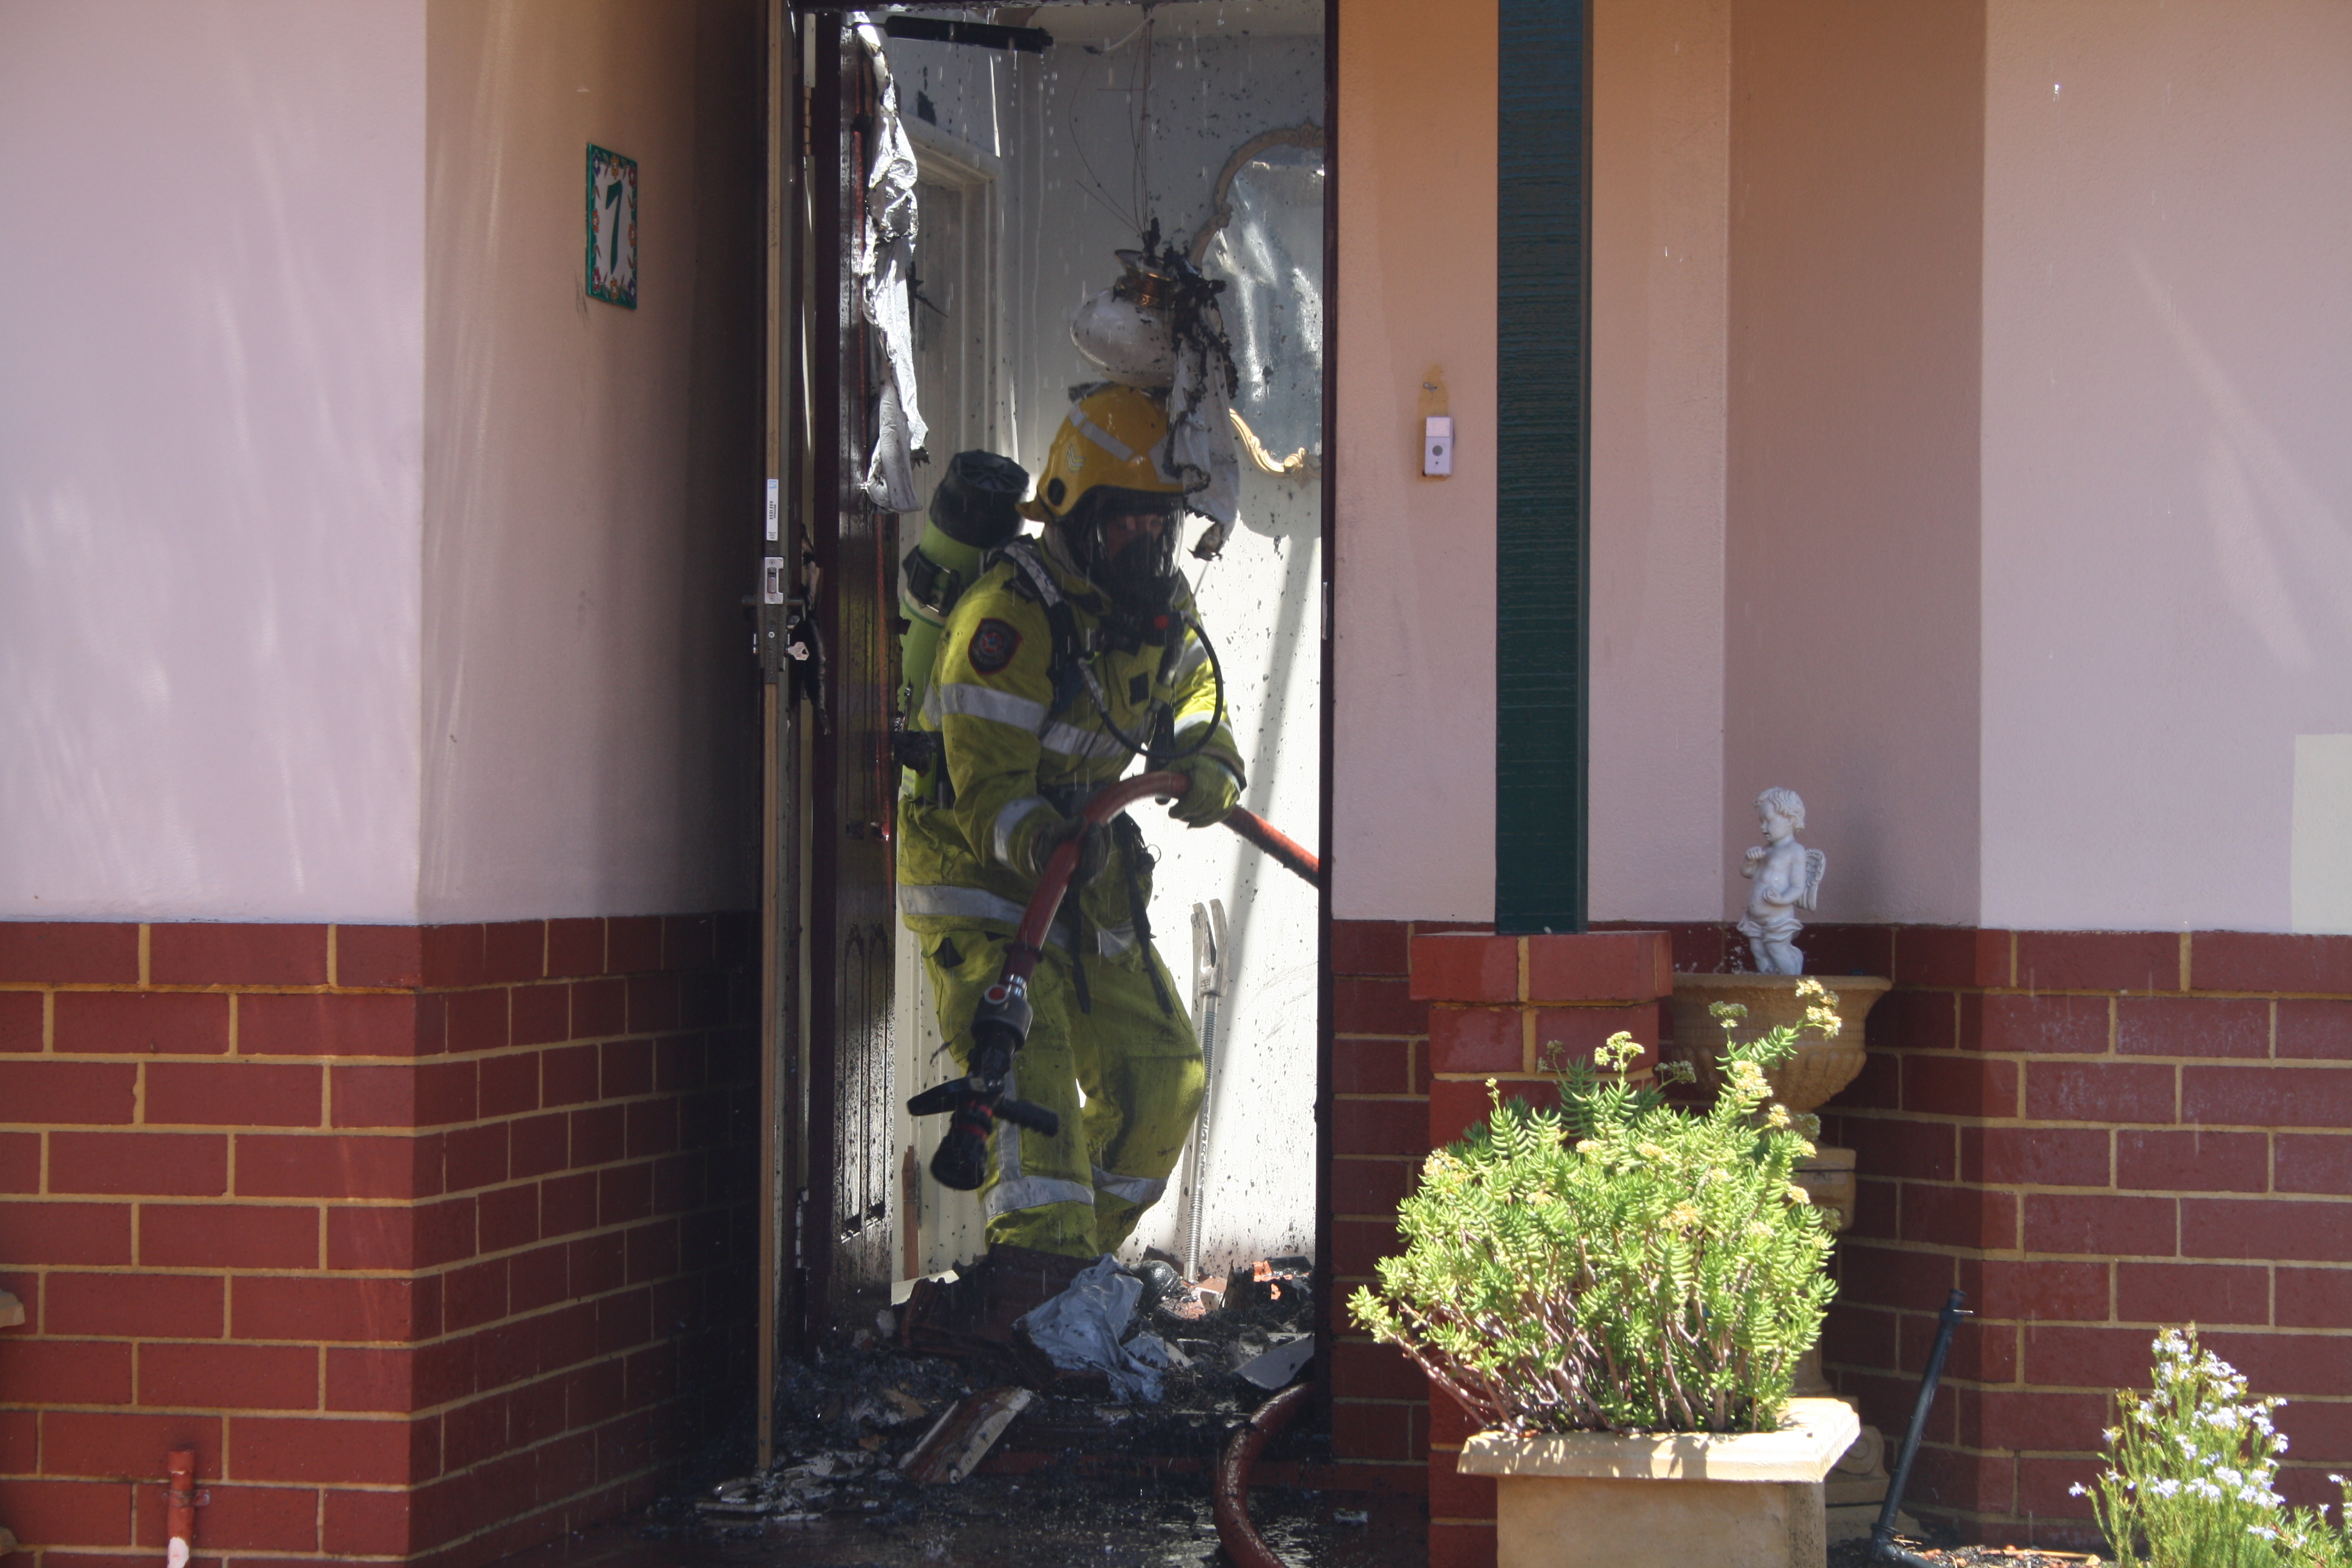 A fire fighter douses the house. Photo: Giovanni Torre